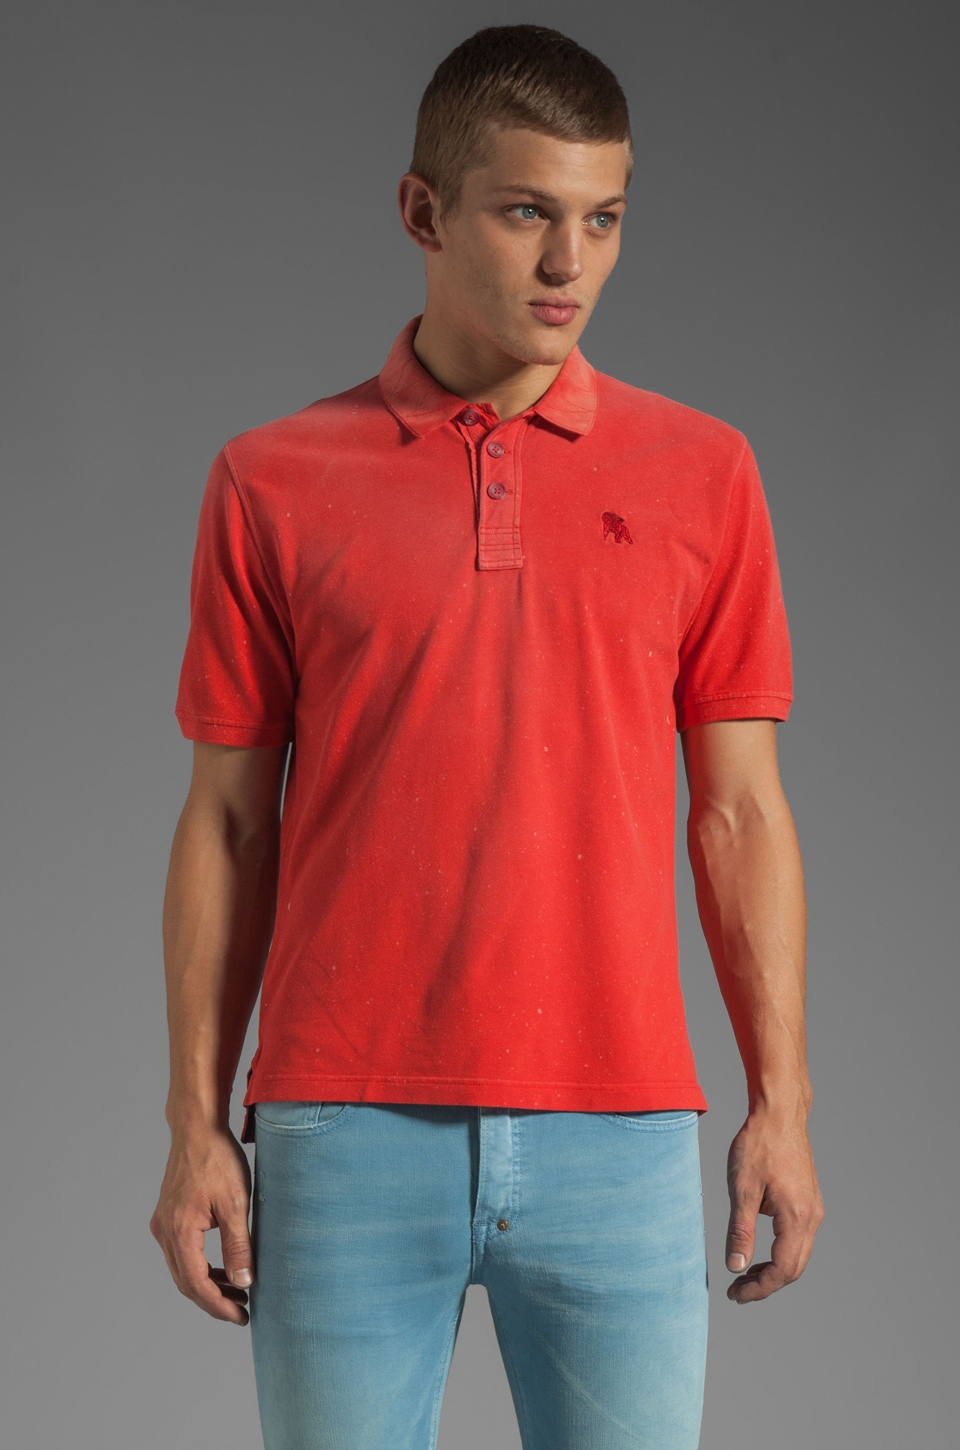 PRPS Goods & Co. Basic Polo in Red